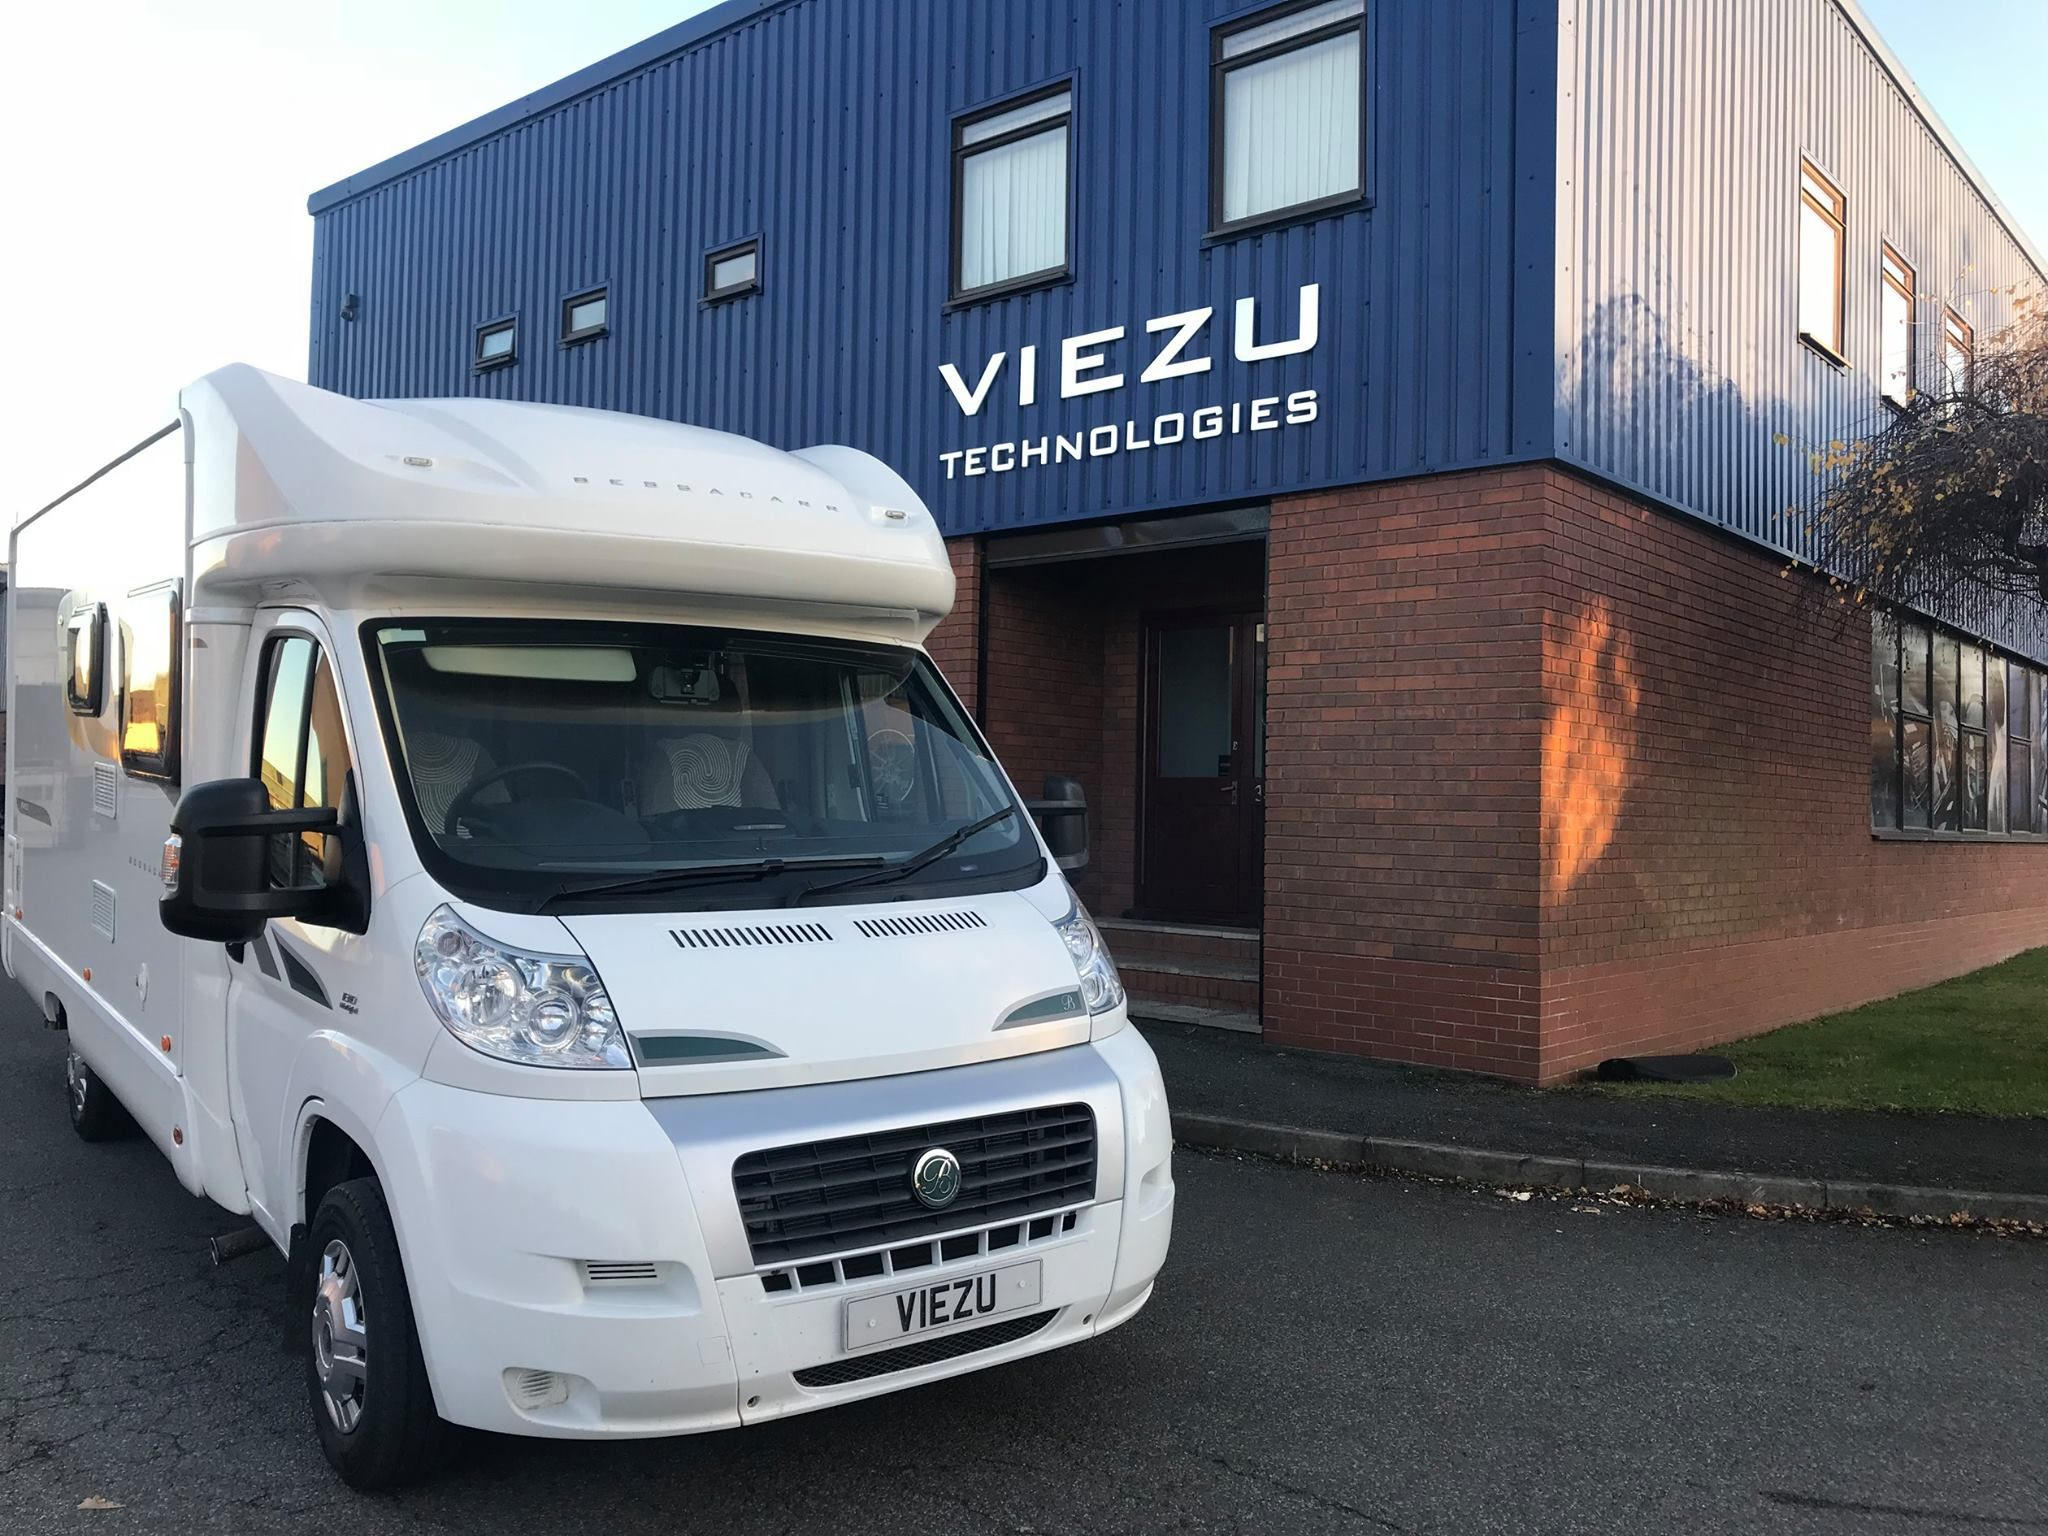 Performance Tuning for Motorhomes | Viezu Performance Tuning and